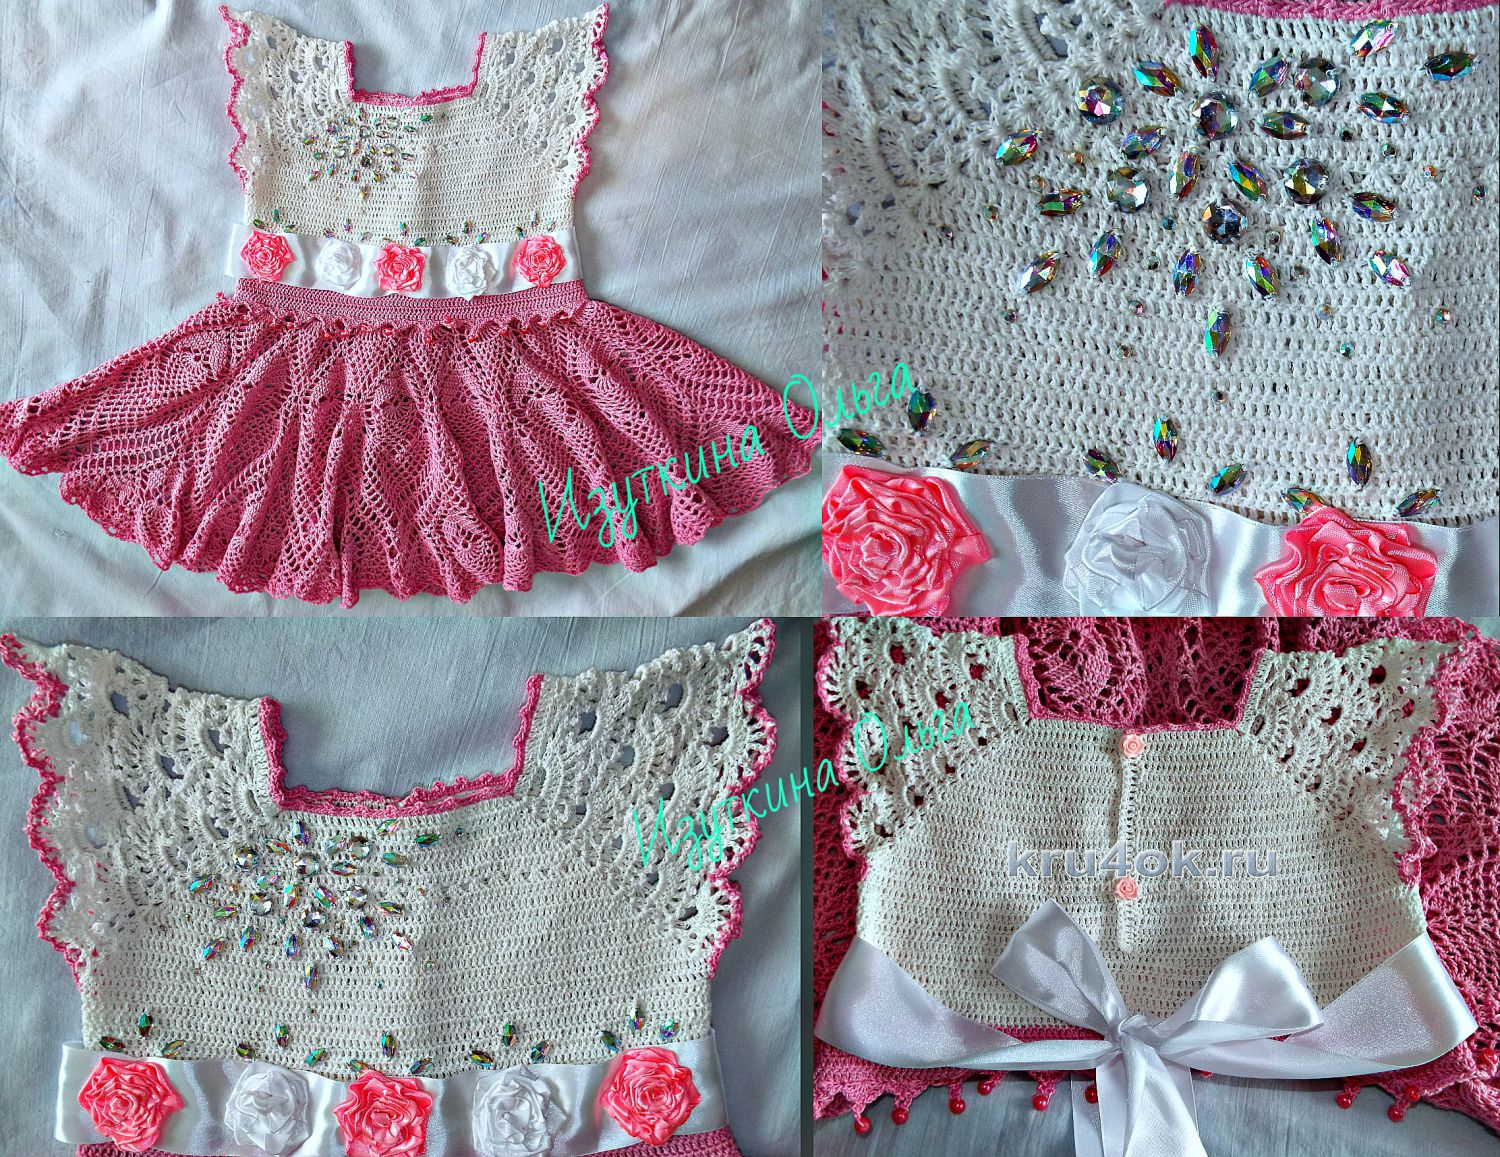 Free crochet patterns to download free crochet patterns uk free crochet patterns to download crochet frocks for girls bankloansurffo Image collections